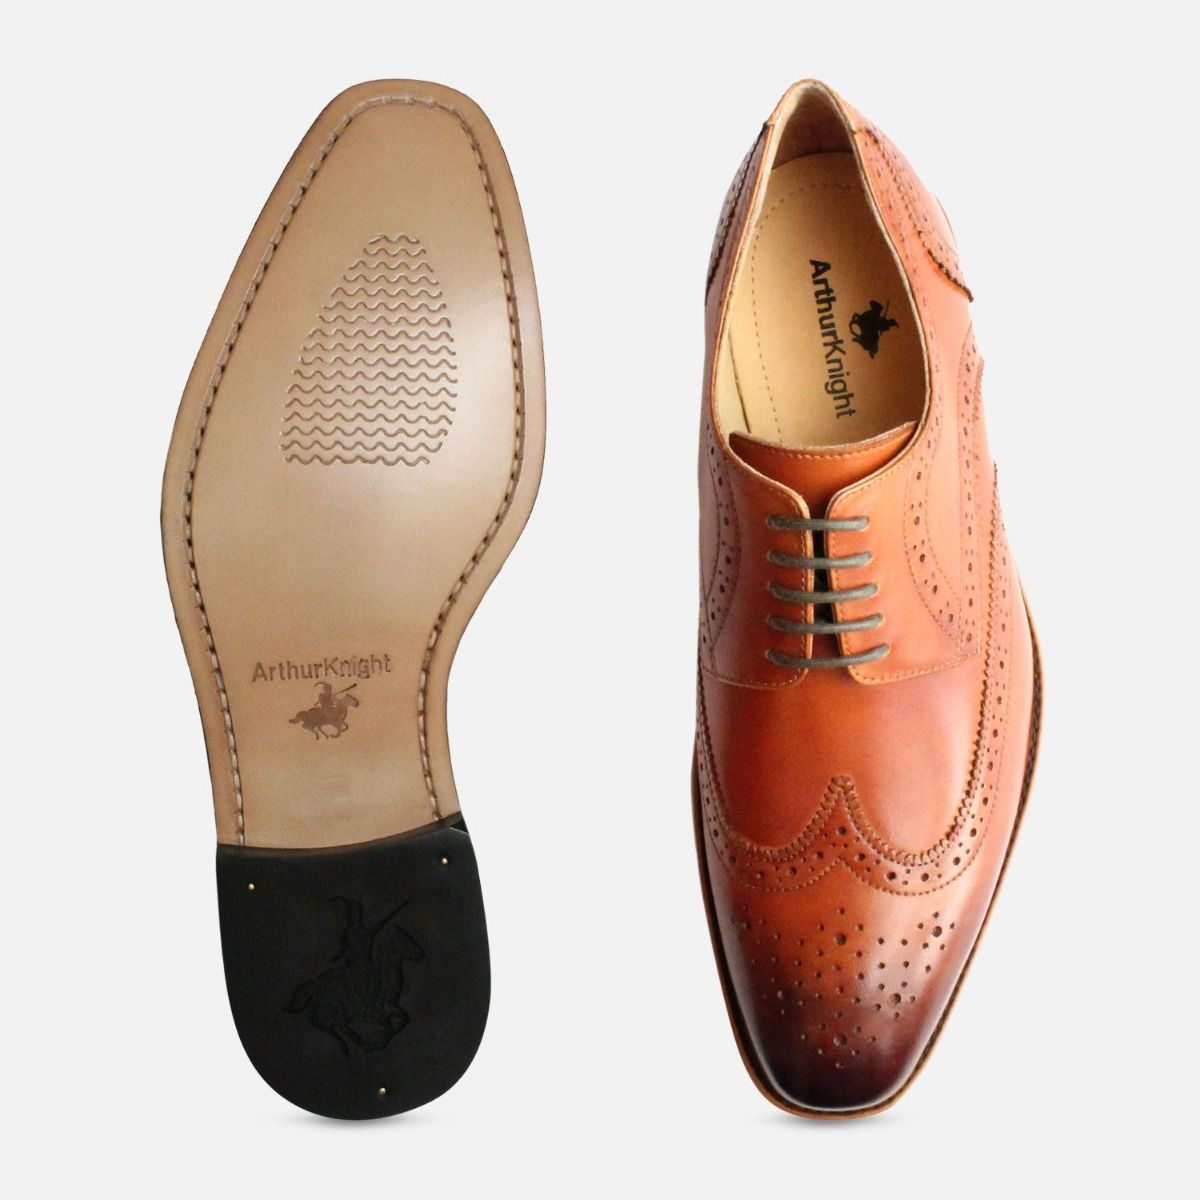 Tan Wingtip Lace Up Brogues by Arthur Knight Shoes